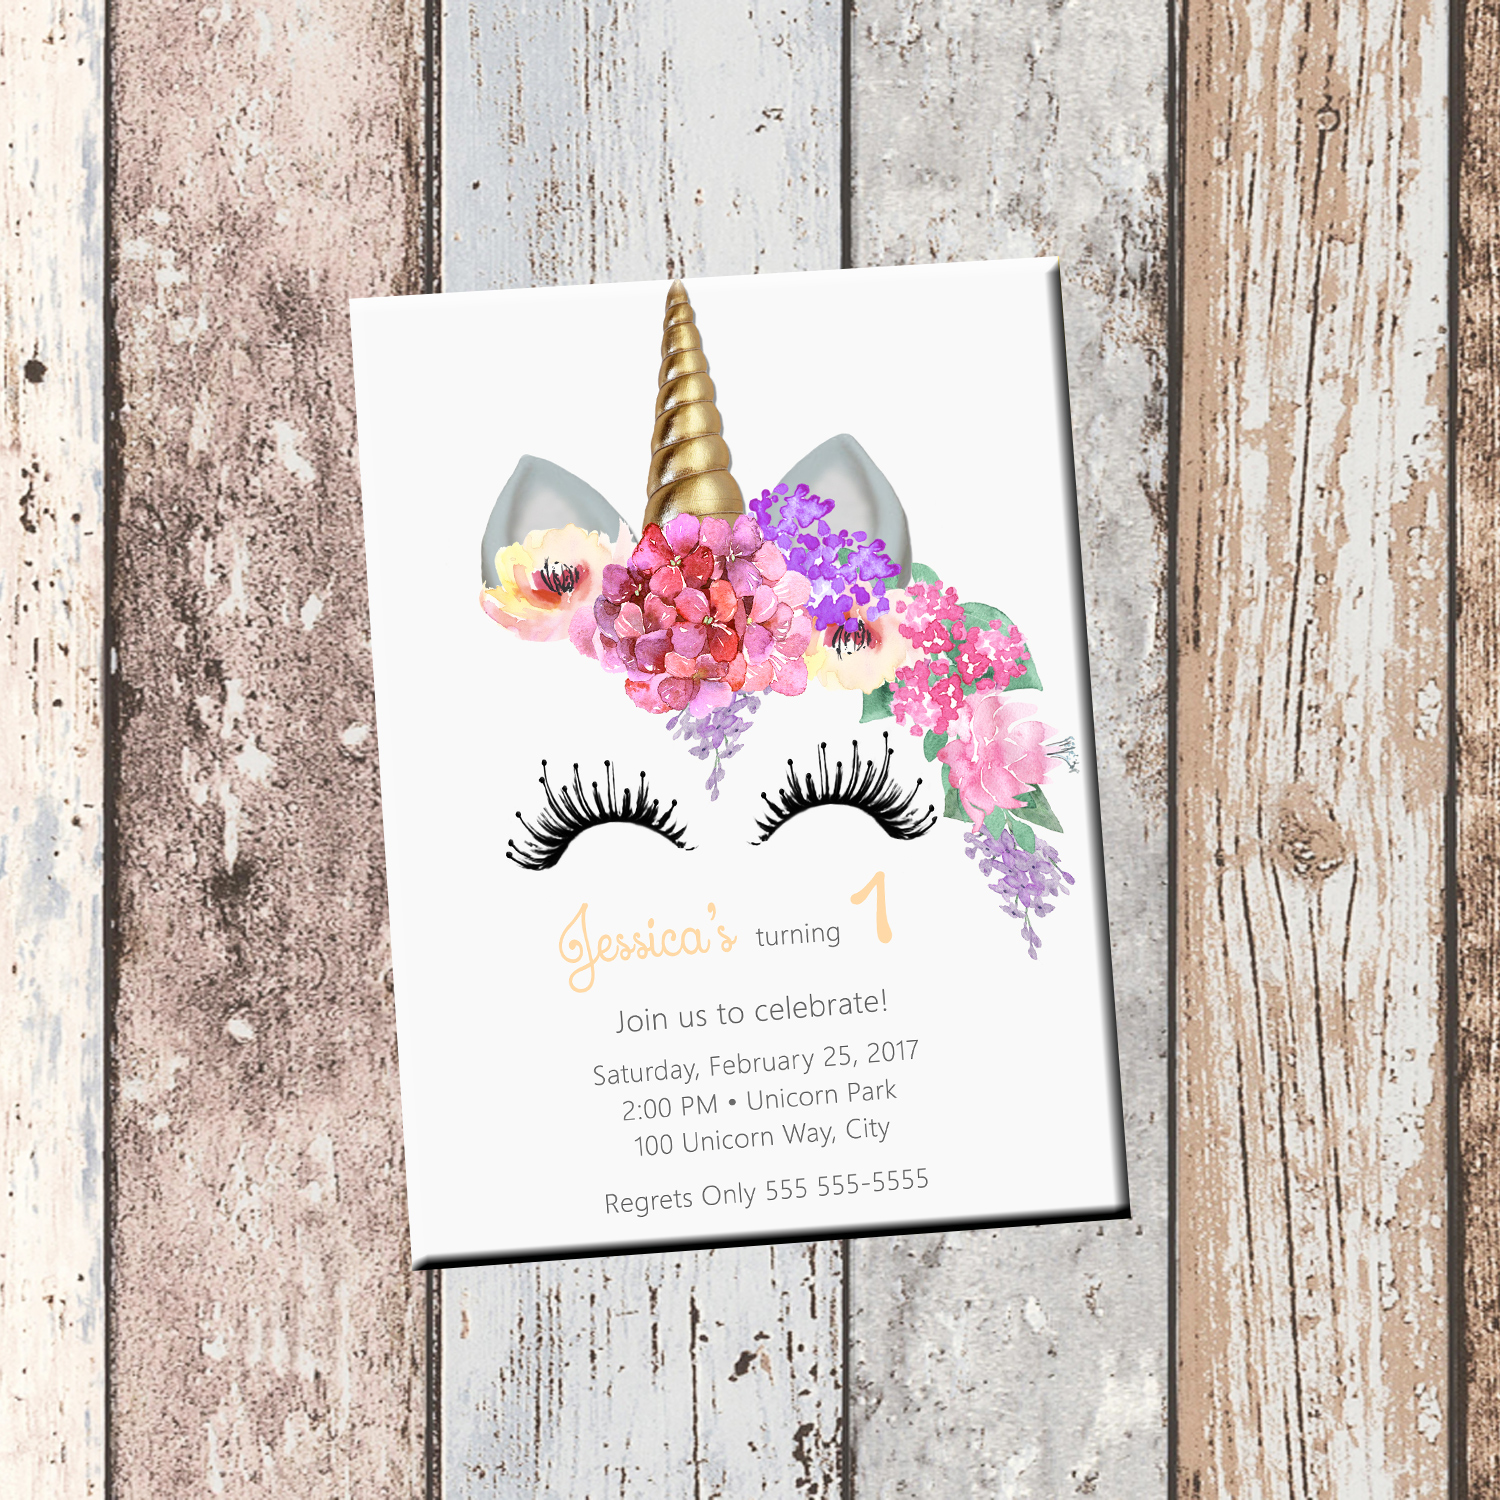 Unicorn Birthday Personalized Invitation 1 Sided Birthday Card – Unicorn Birthday Party Invitations